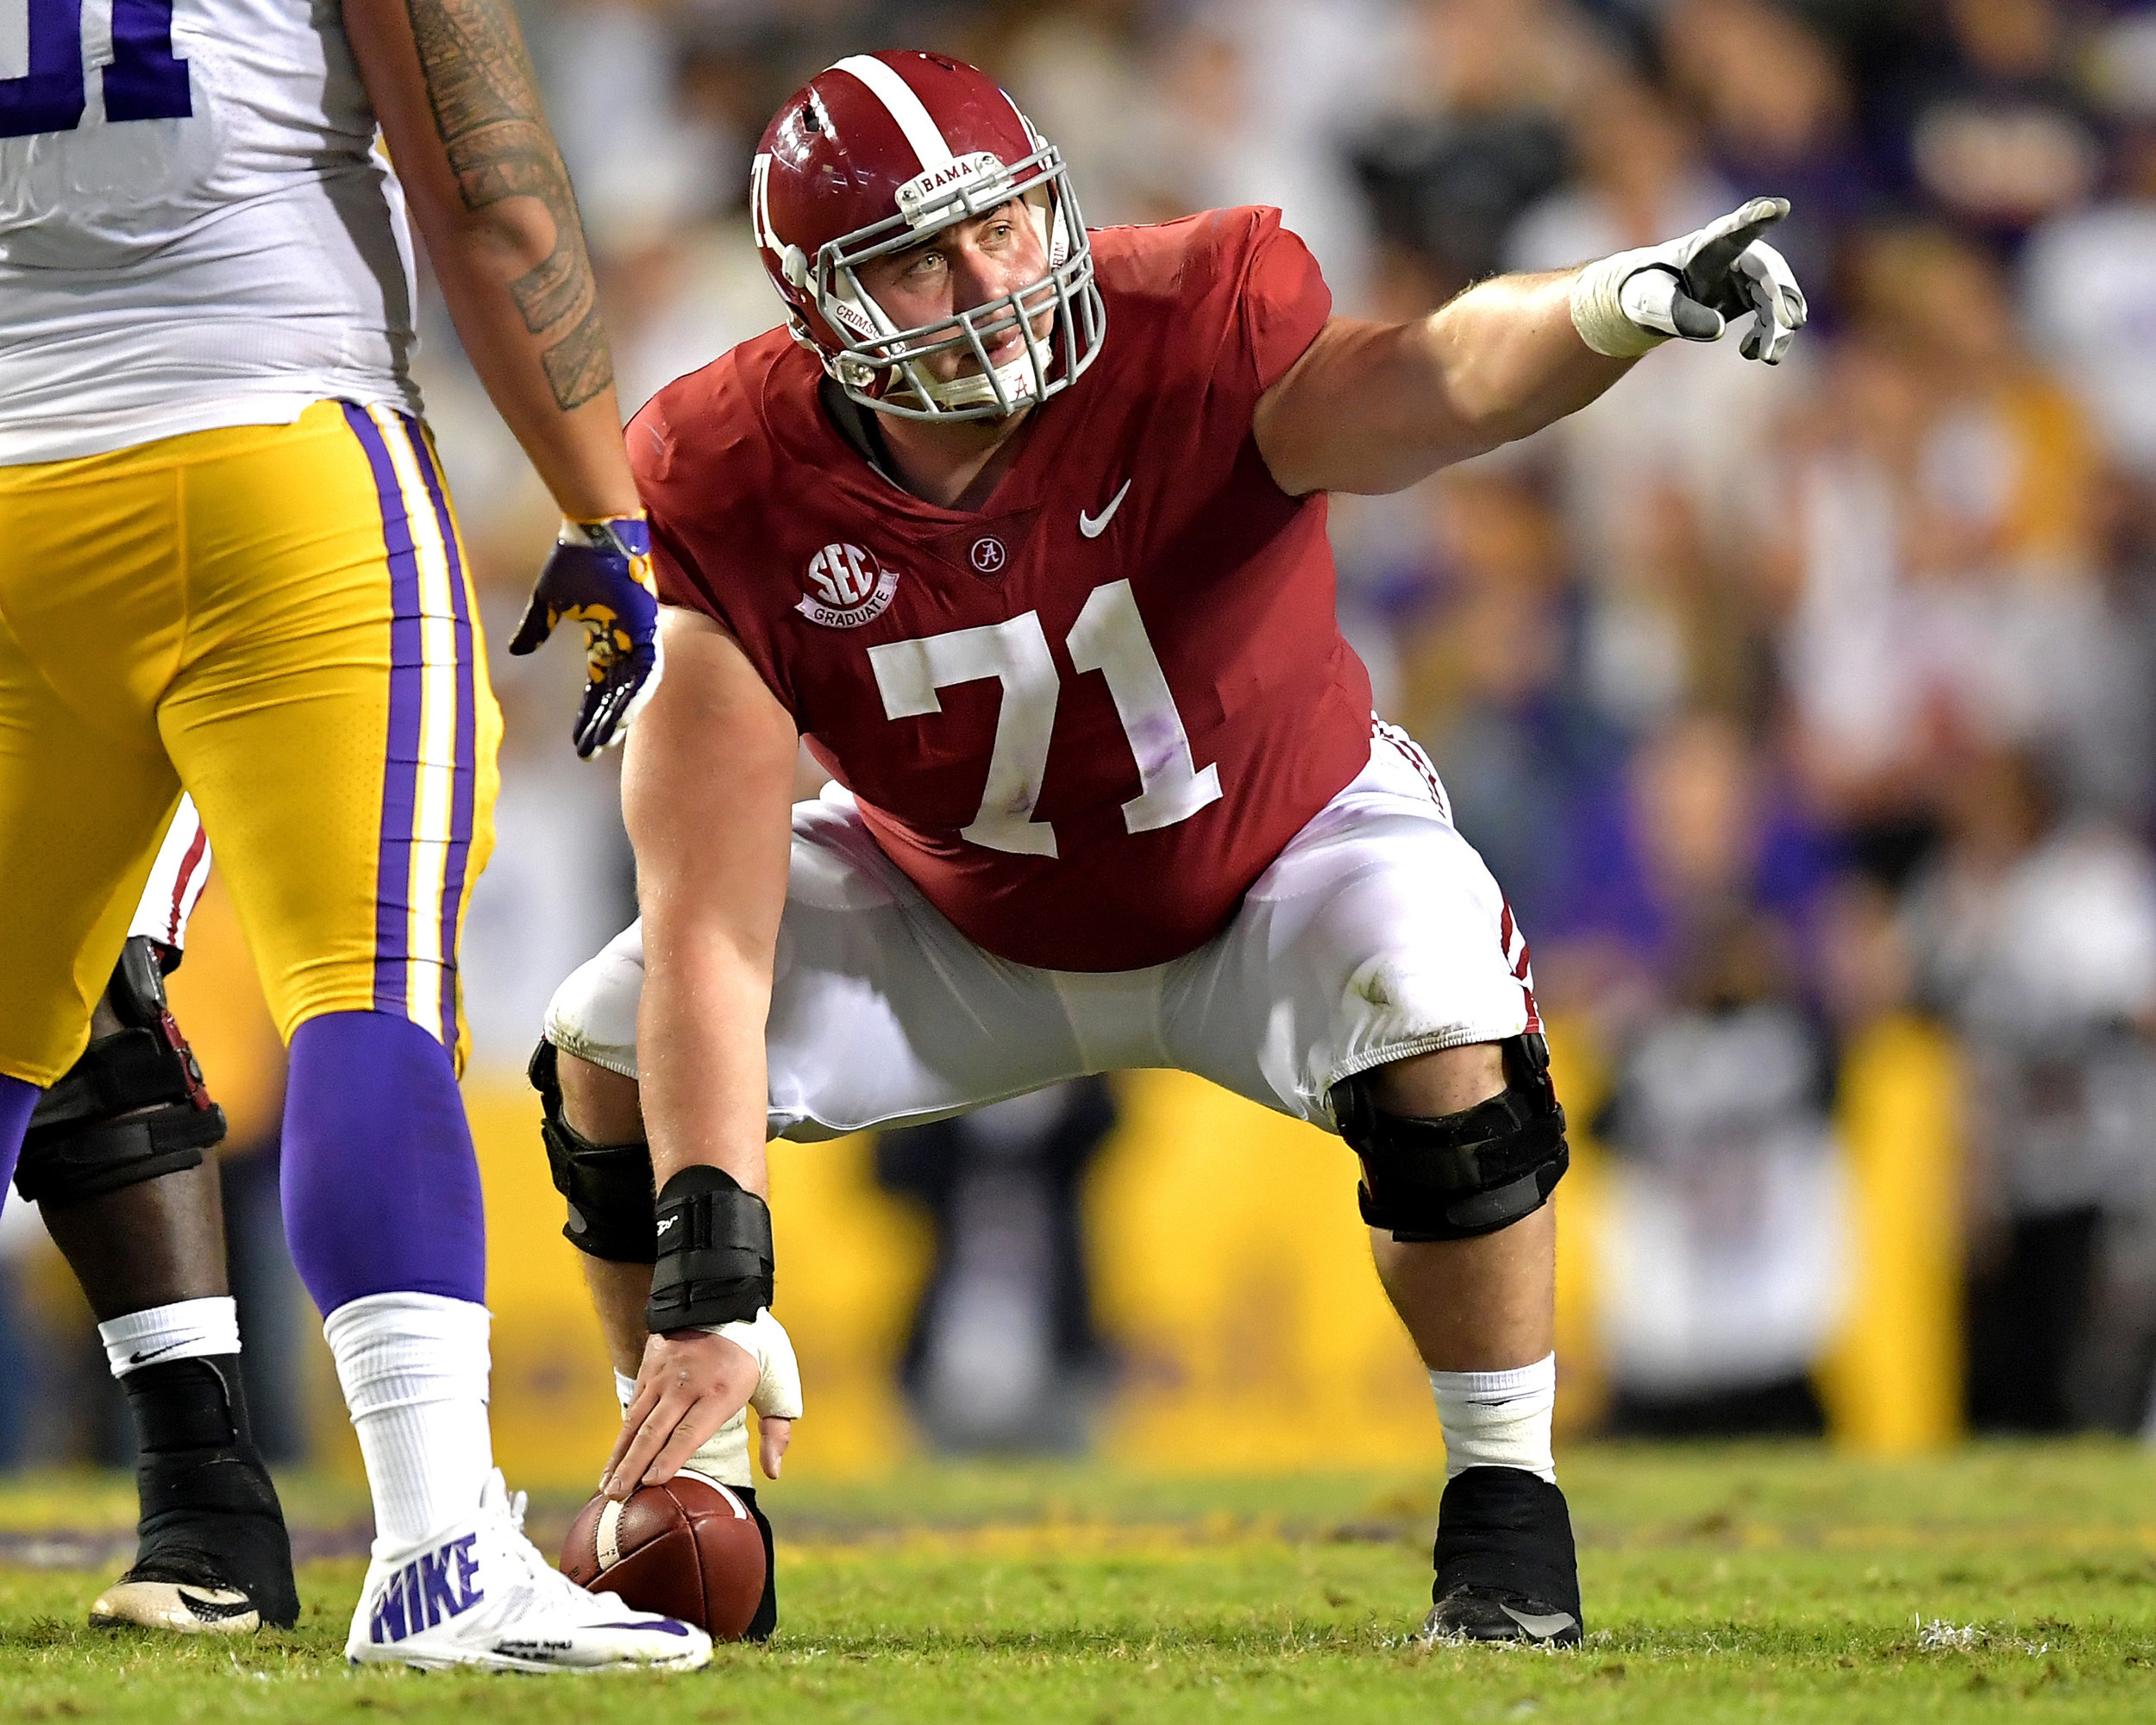 Alabama Crimson Tide center Ross Pierschbacher (71) points out defensive adjustments during the second half of an NCAA football game against the LSU Tigers Saturday, November 3, 2018, at Tiger Stadium in Baton Rouge, La. Alabama wins 29-0. (Photo by Lee Walls)